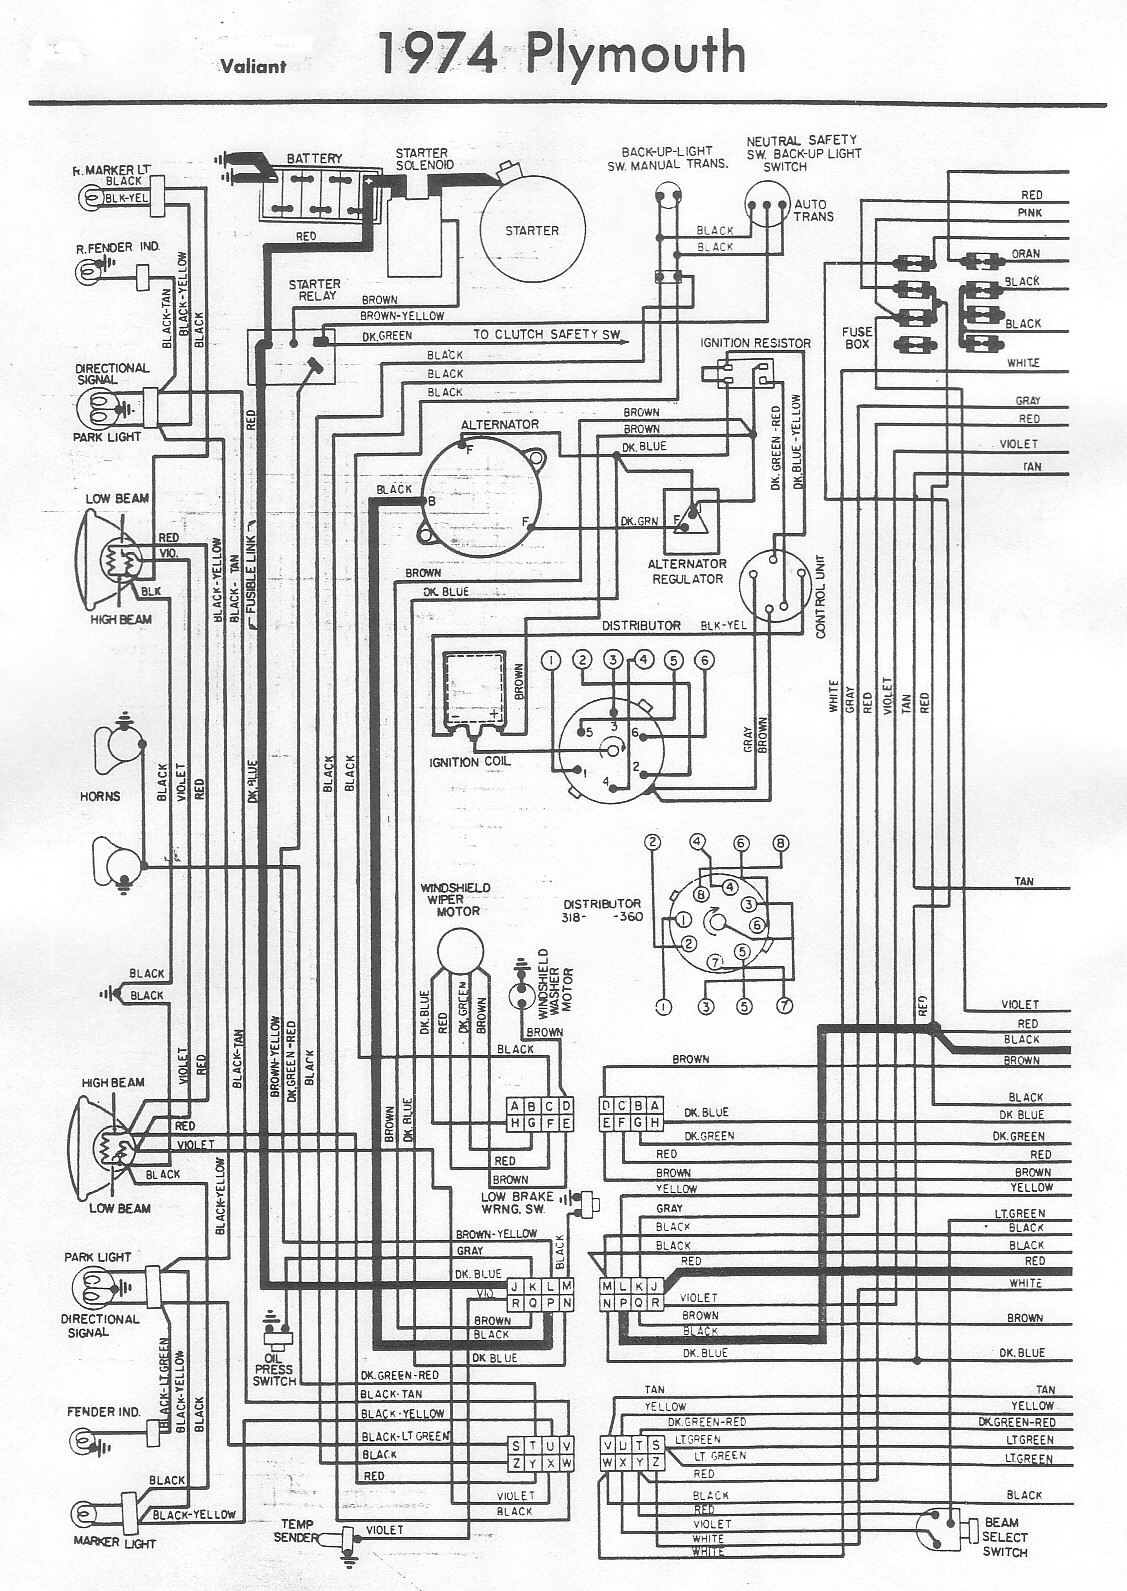 68 Plymouth Wiring Diagram - 2000 Ford Windstar Fuse Panel Diagram Free  Download - cts-lsa.2014ok.jeanjaures37.frWiring Diagram